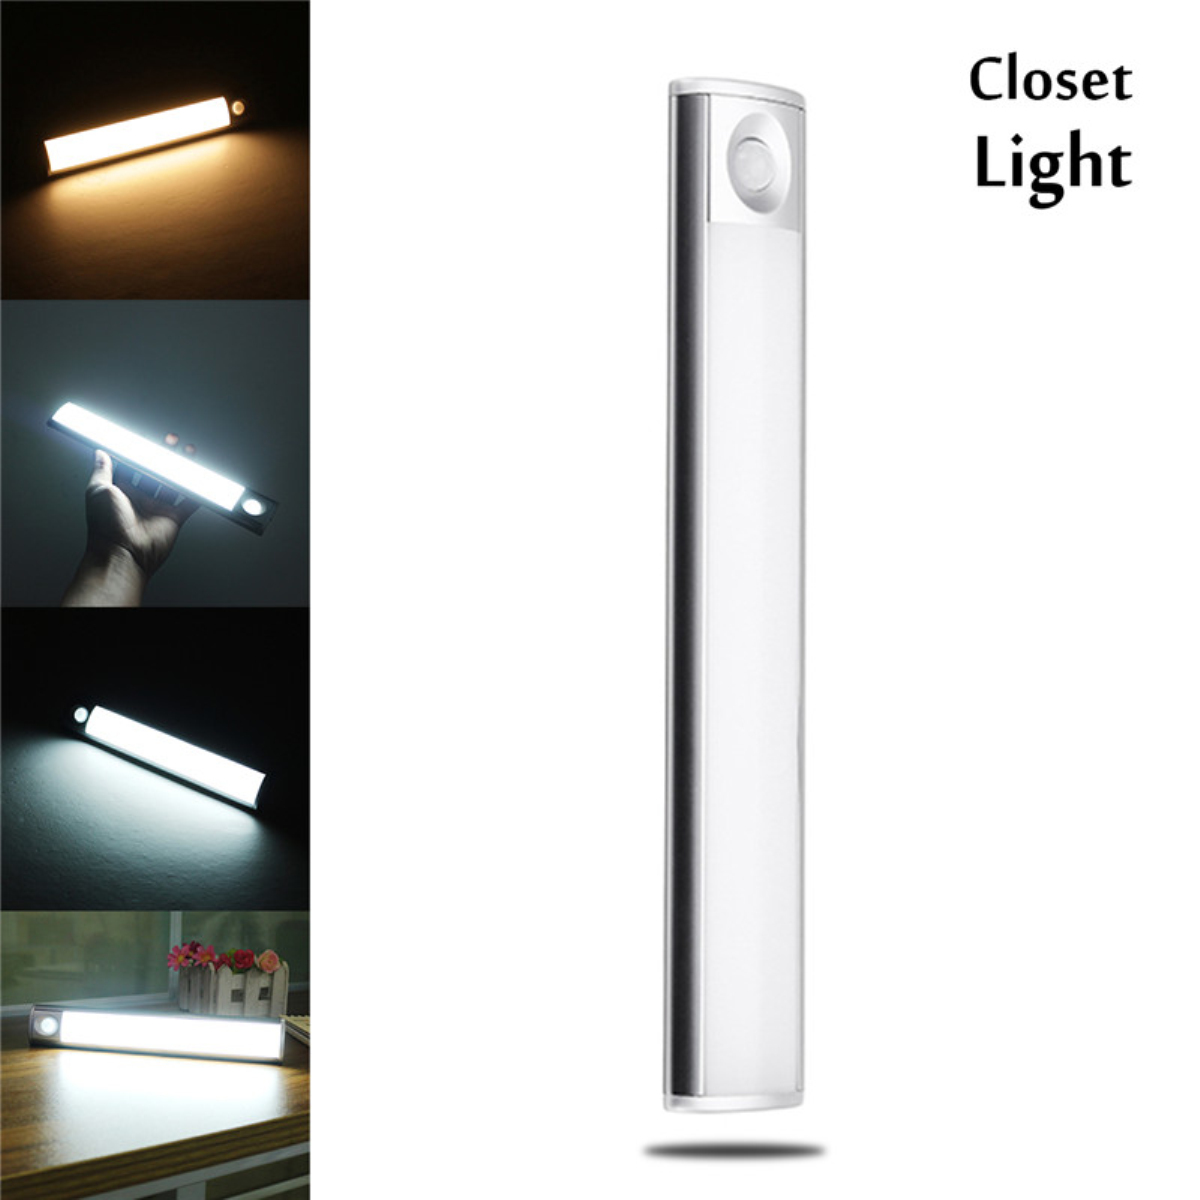 Closet lighting led Inside 33 Leds Rechargeable Motion Sensor Night Light Led Closet Light For Kitchen Cabinet Stairs Wardrobe Bookcase Lights Acquisautoinfo 33 Leds Rechargeable Motion Sensor Night Light Led Closet Light For